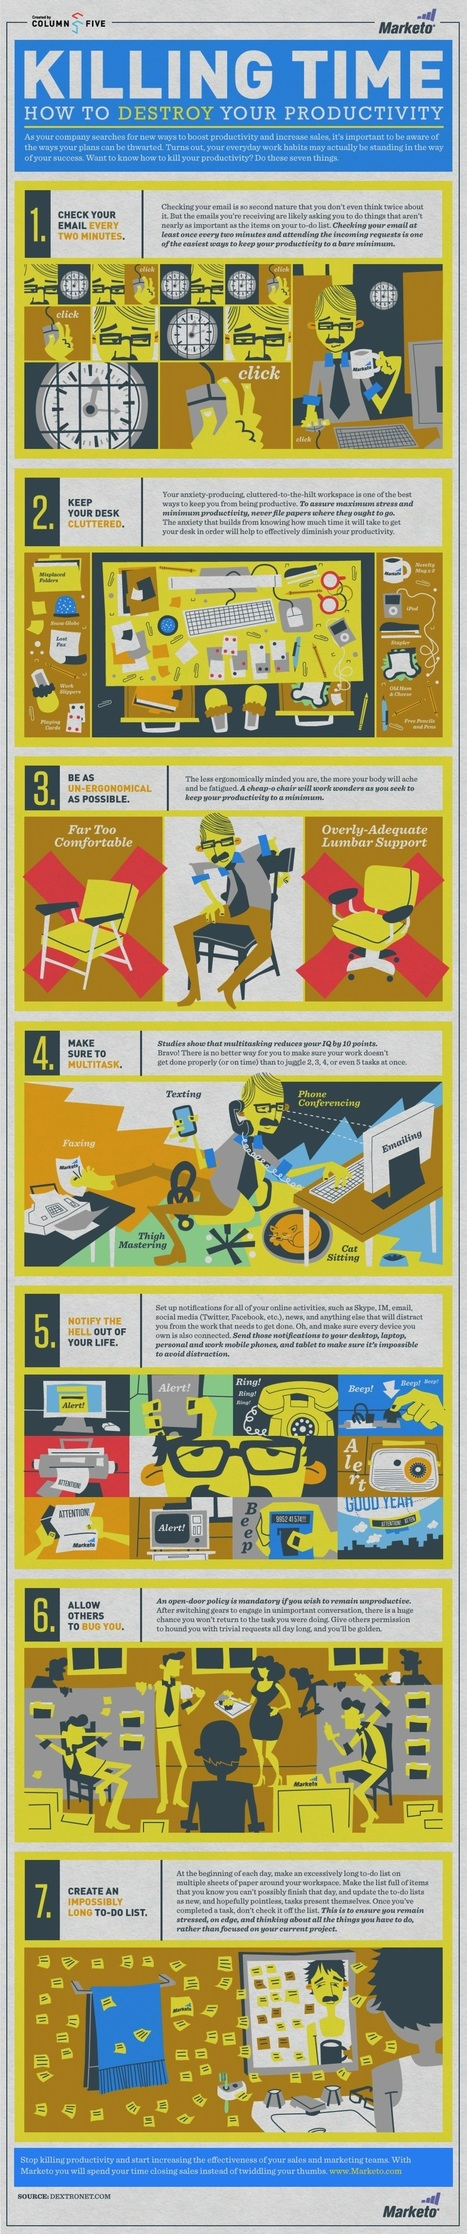 7 Ways to Destroy Productivity - Lifehack | Certificate IV in Training and Assessment (TAE 40110) | Scoop.it